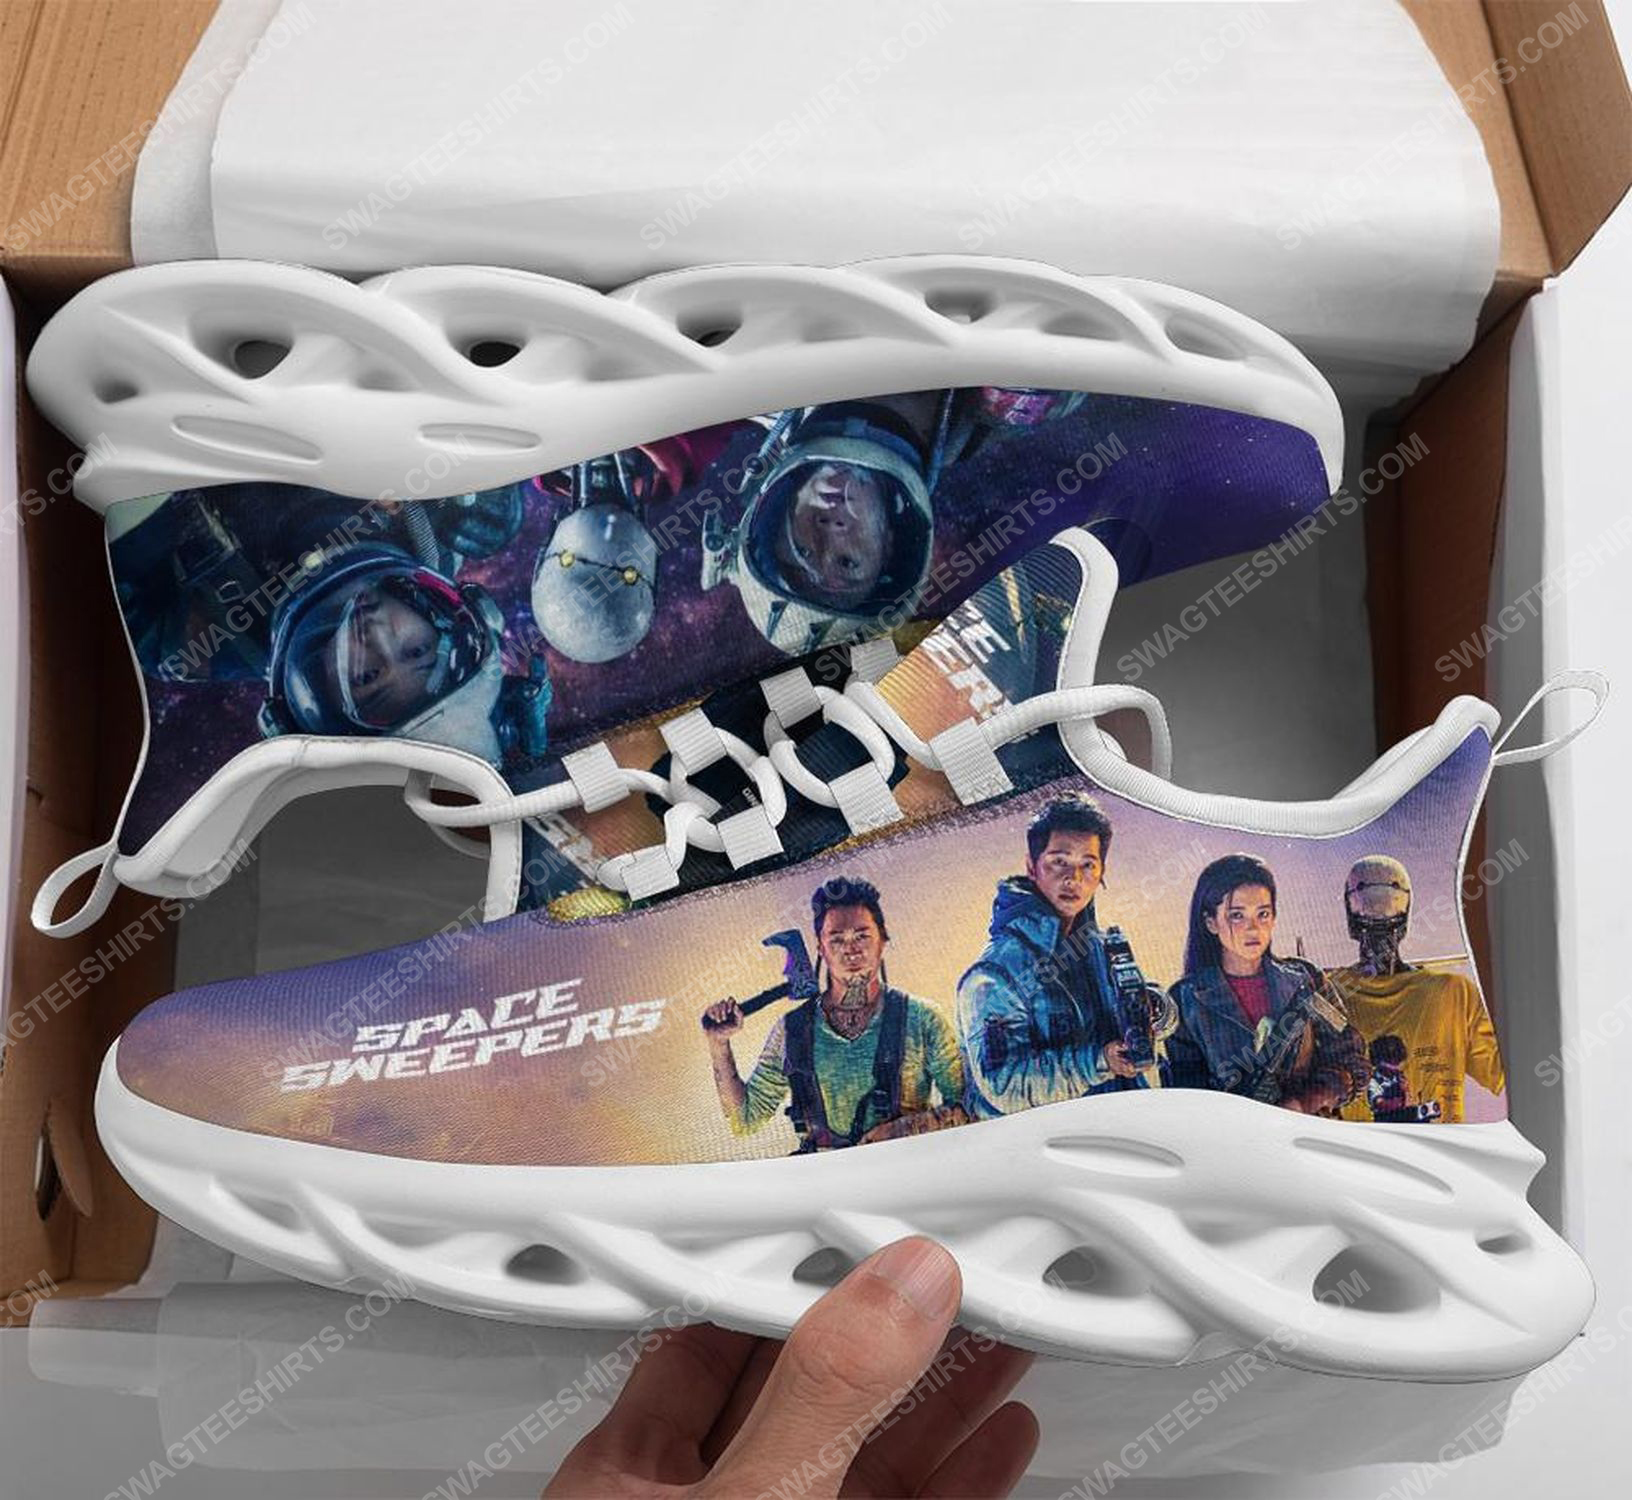 The space sweepers movie max soul shoes 1 - Copy (2)